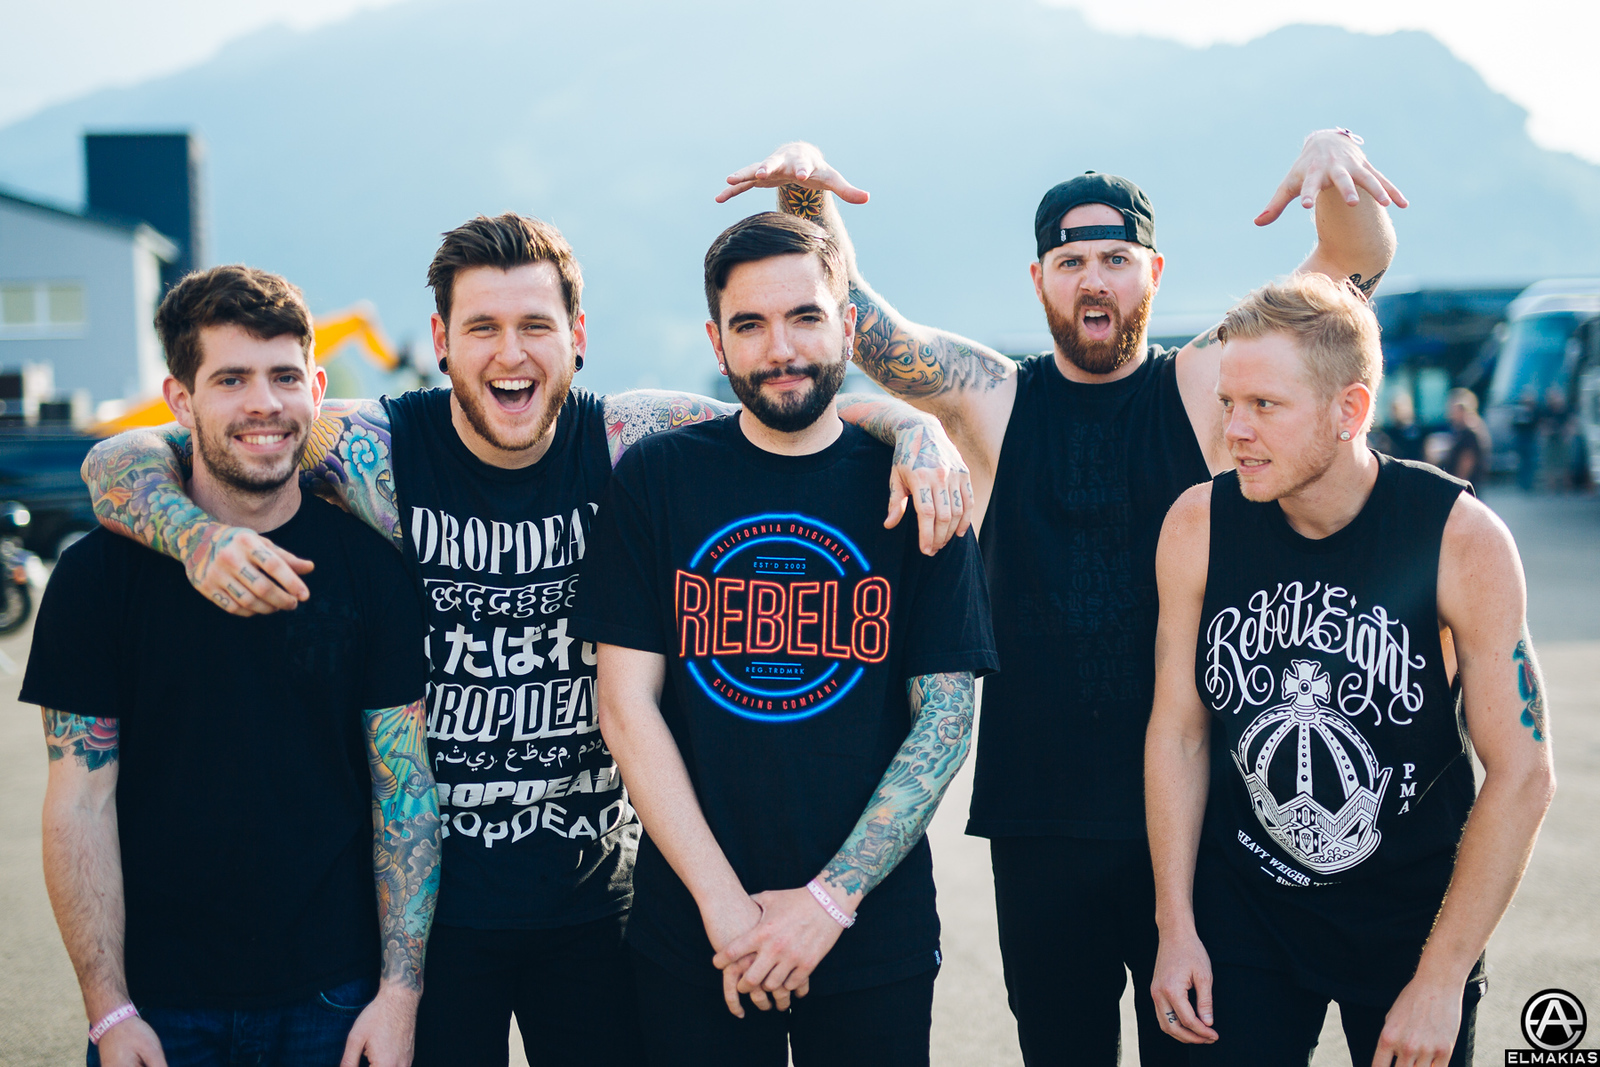 A Day To Remember at Greenfield Festival in Interlaken, Switzerland